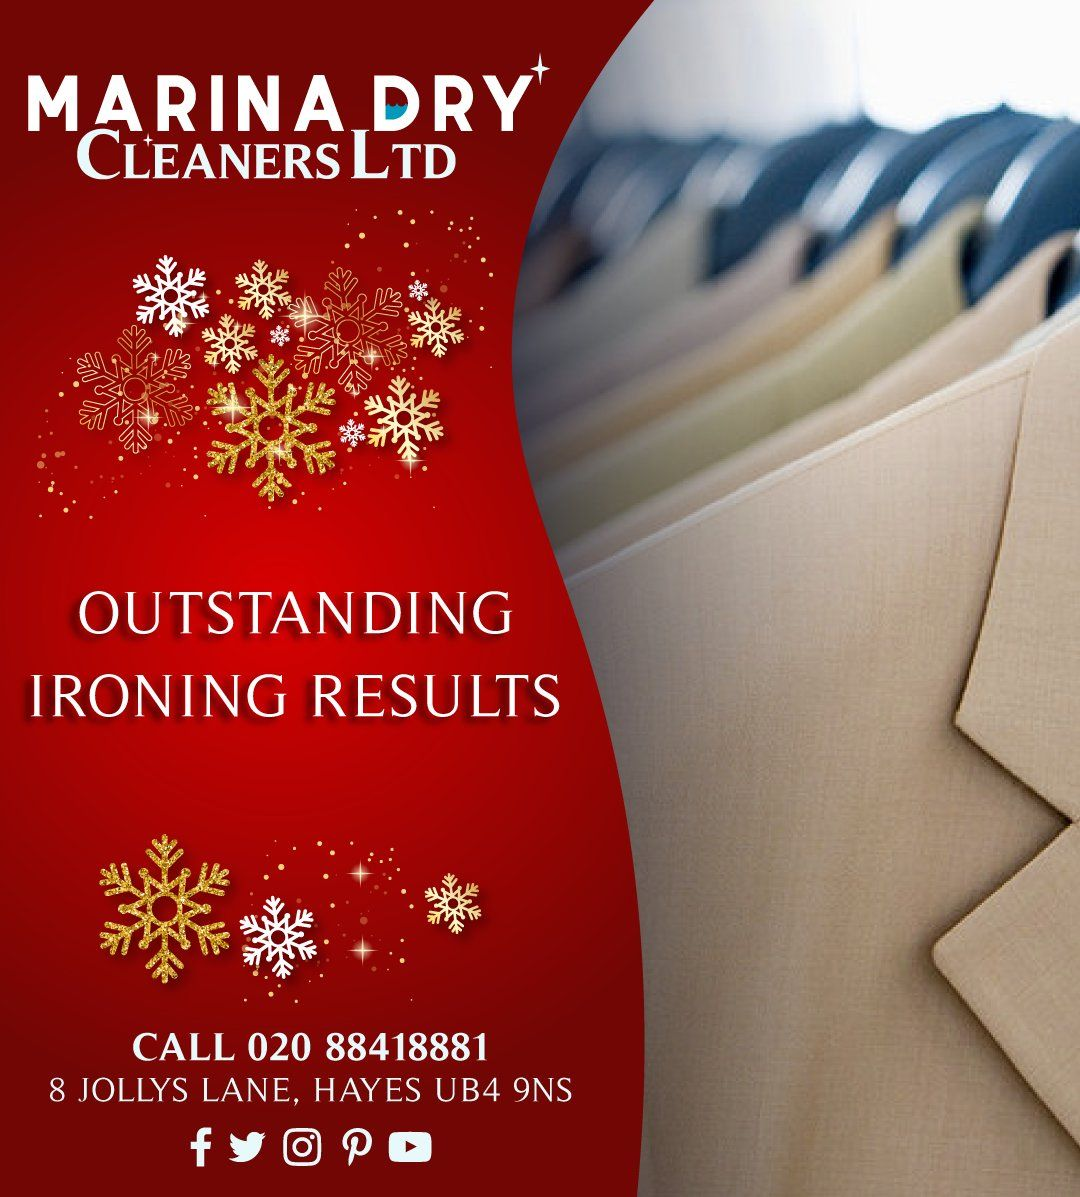 Outstanding Ironing Results Call Us On 020 8841 8881 Dry